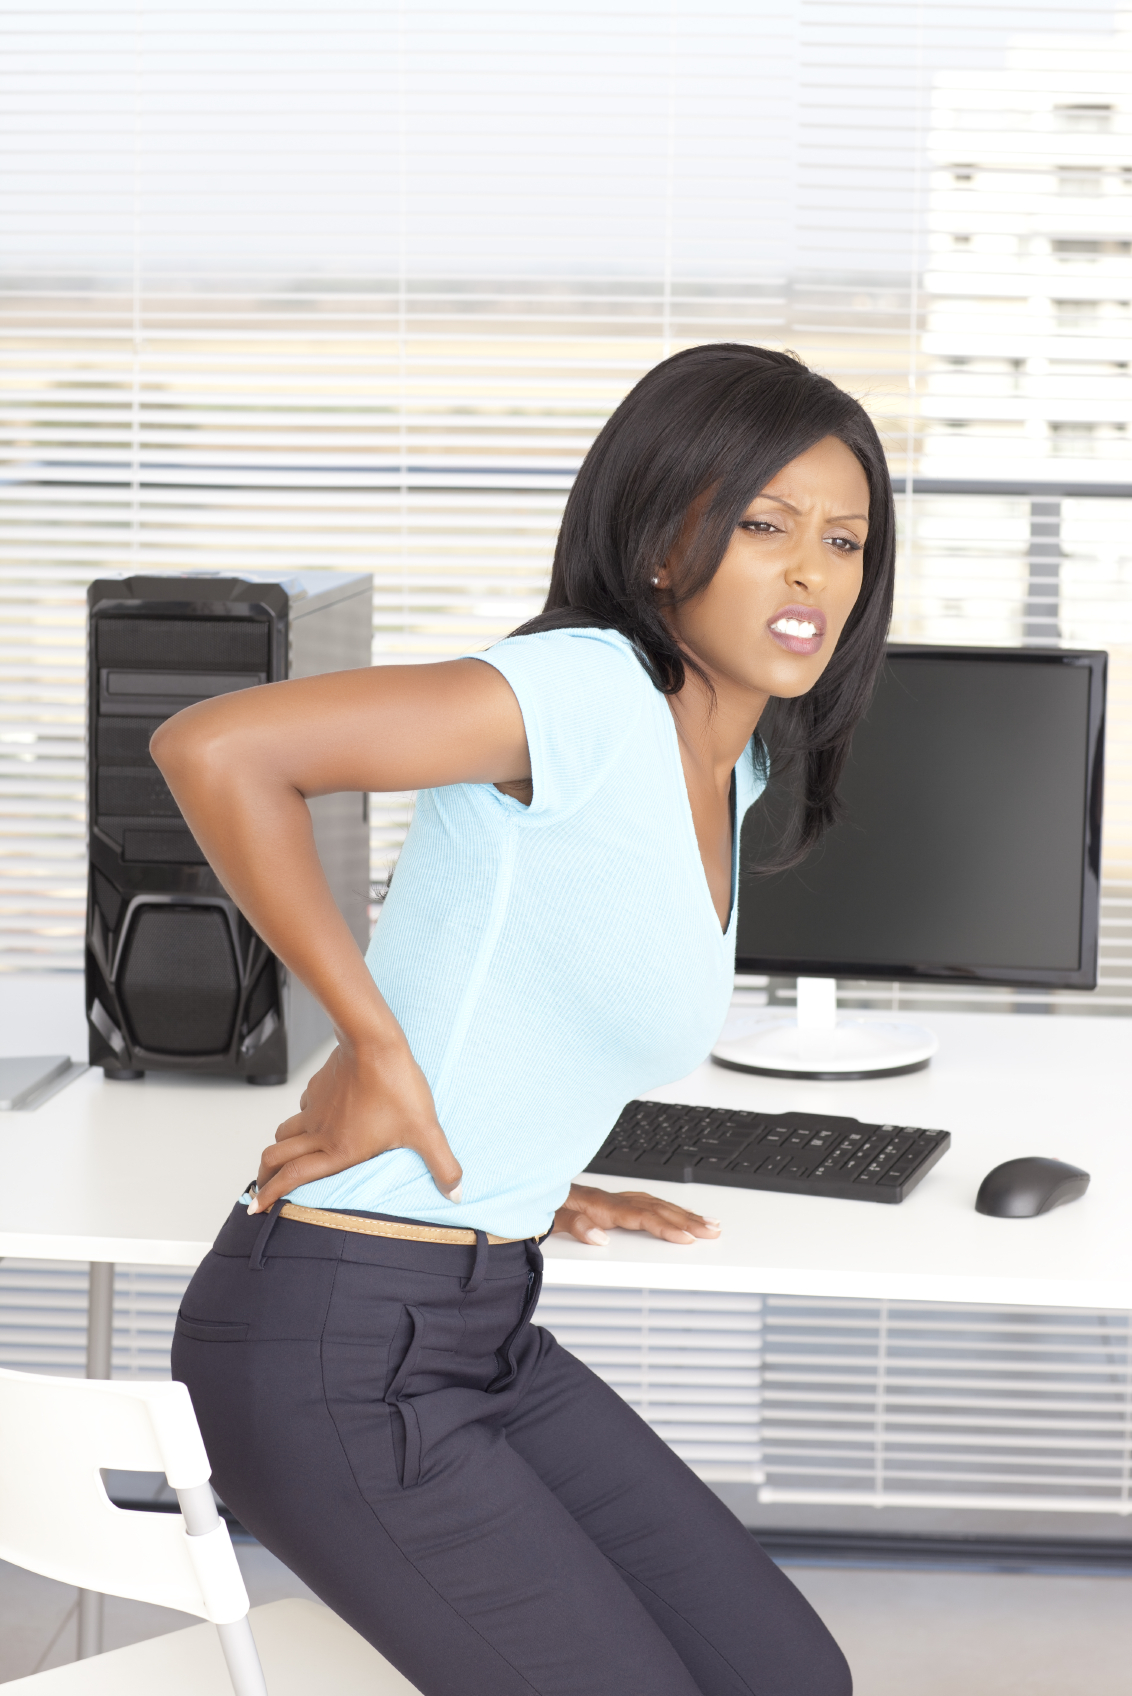 Women experiencing lower back pain